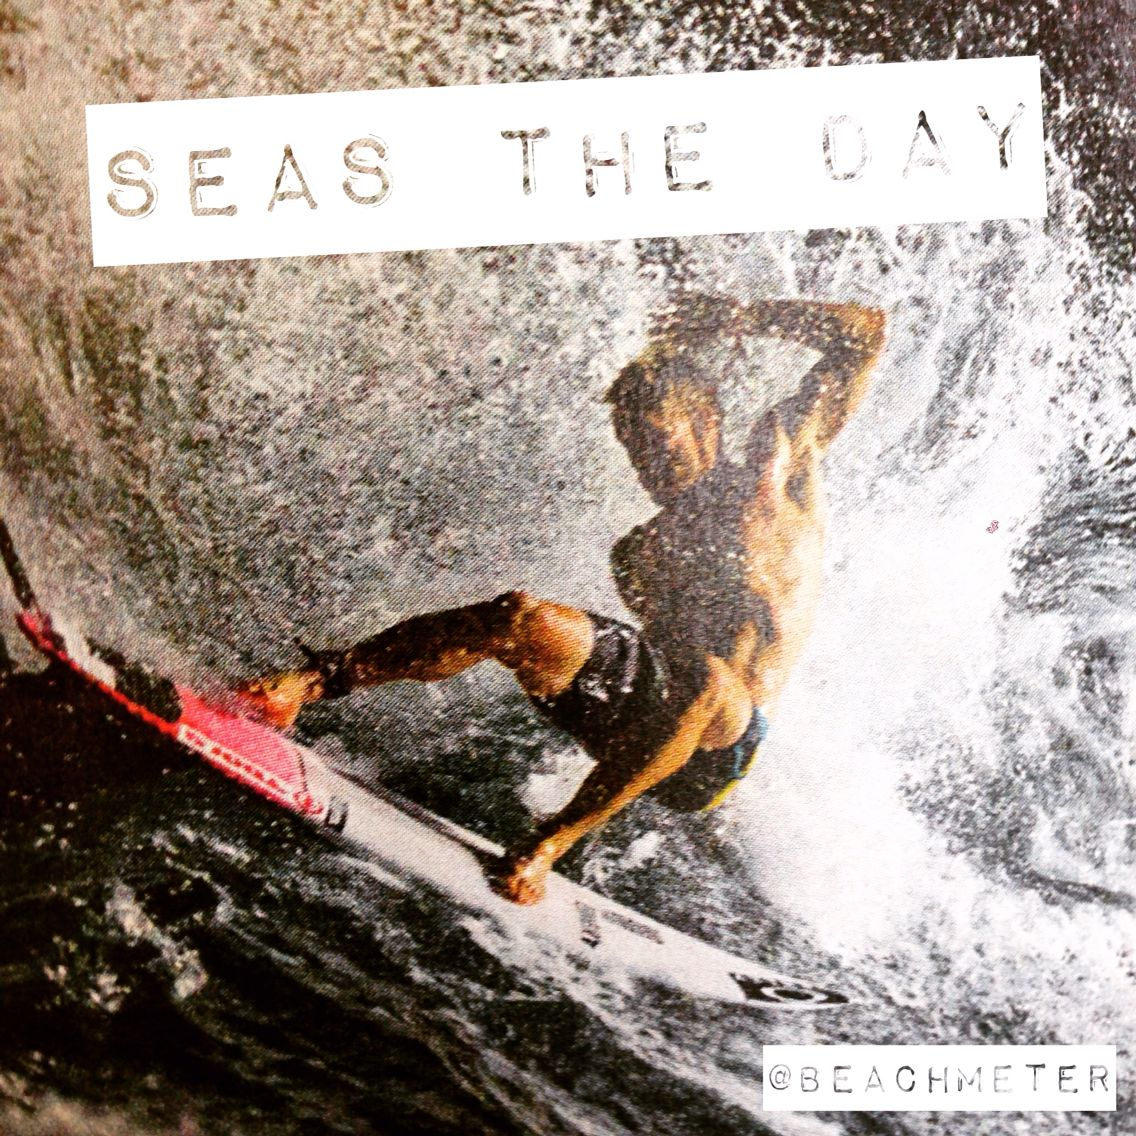 Seas the day with surfer in big waves by http://beachmeter.com.linux128.unoeuro-server.com